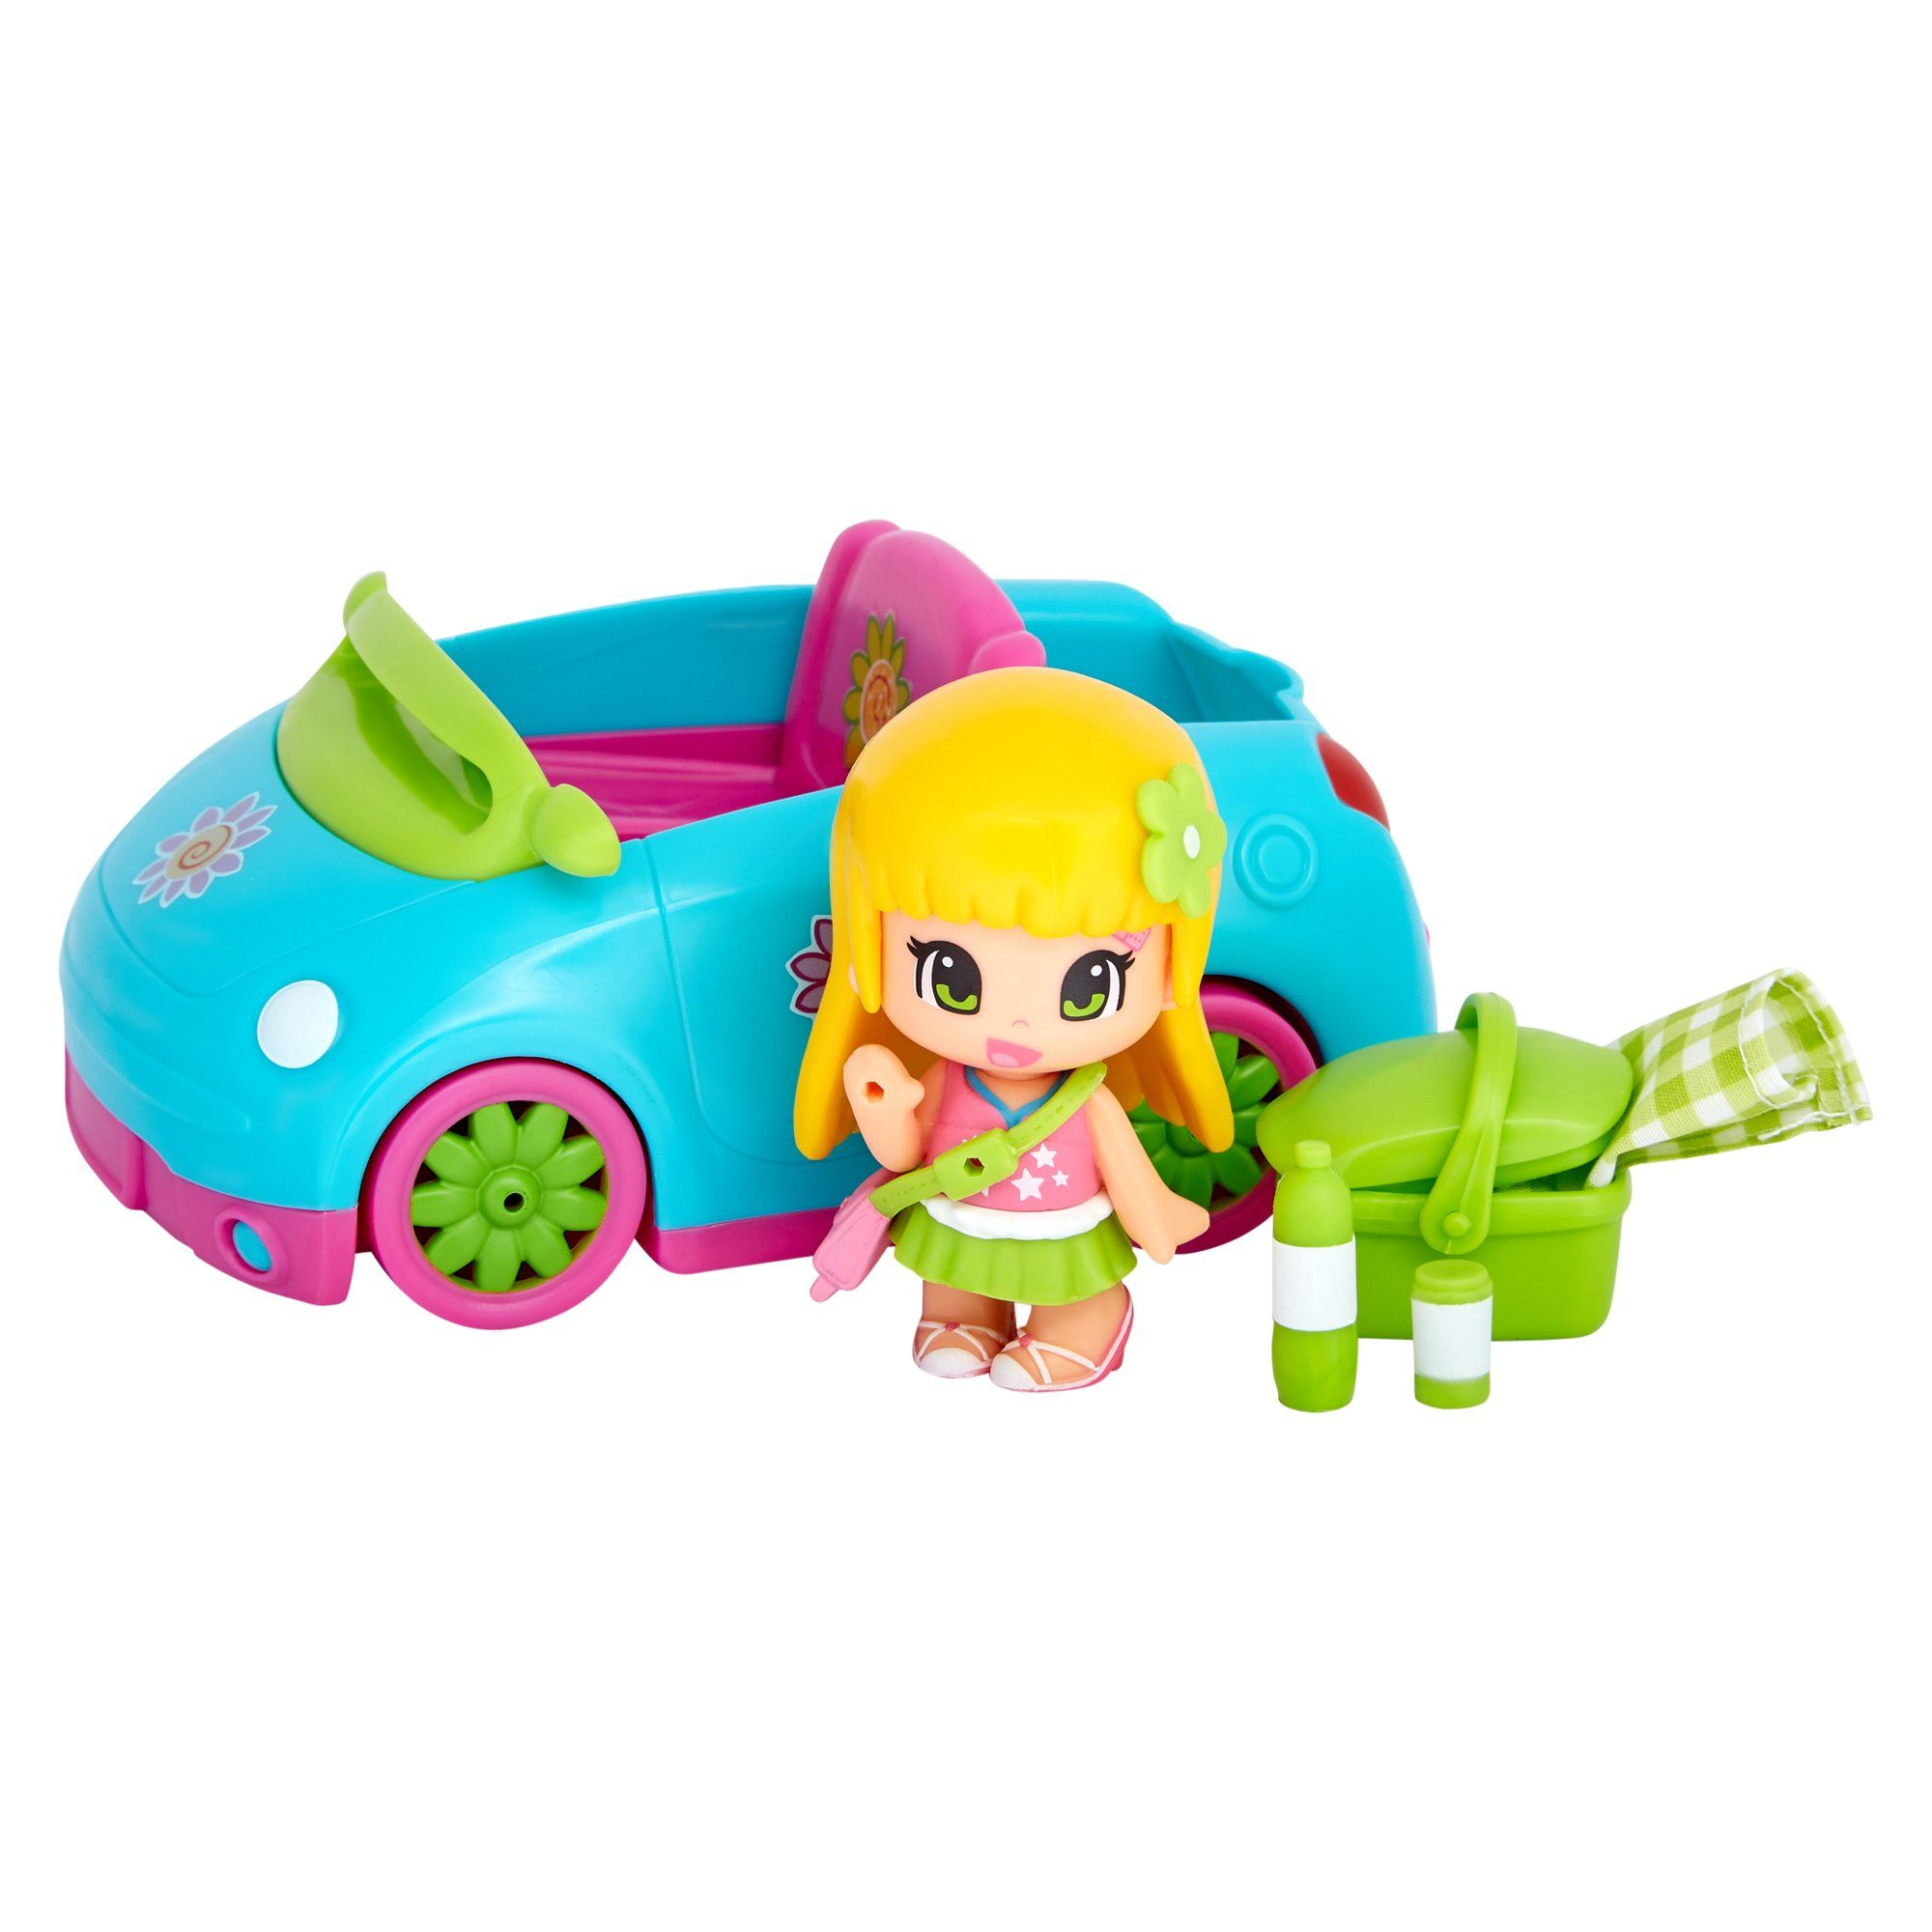 Pinypon Car Toys Isbister & Co Wholesale